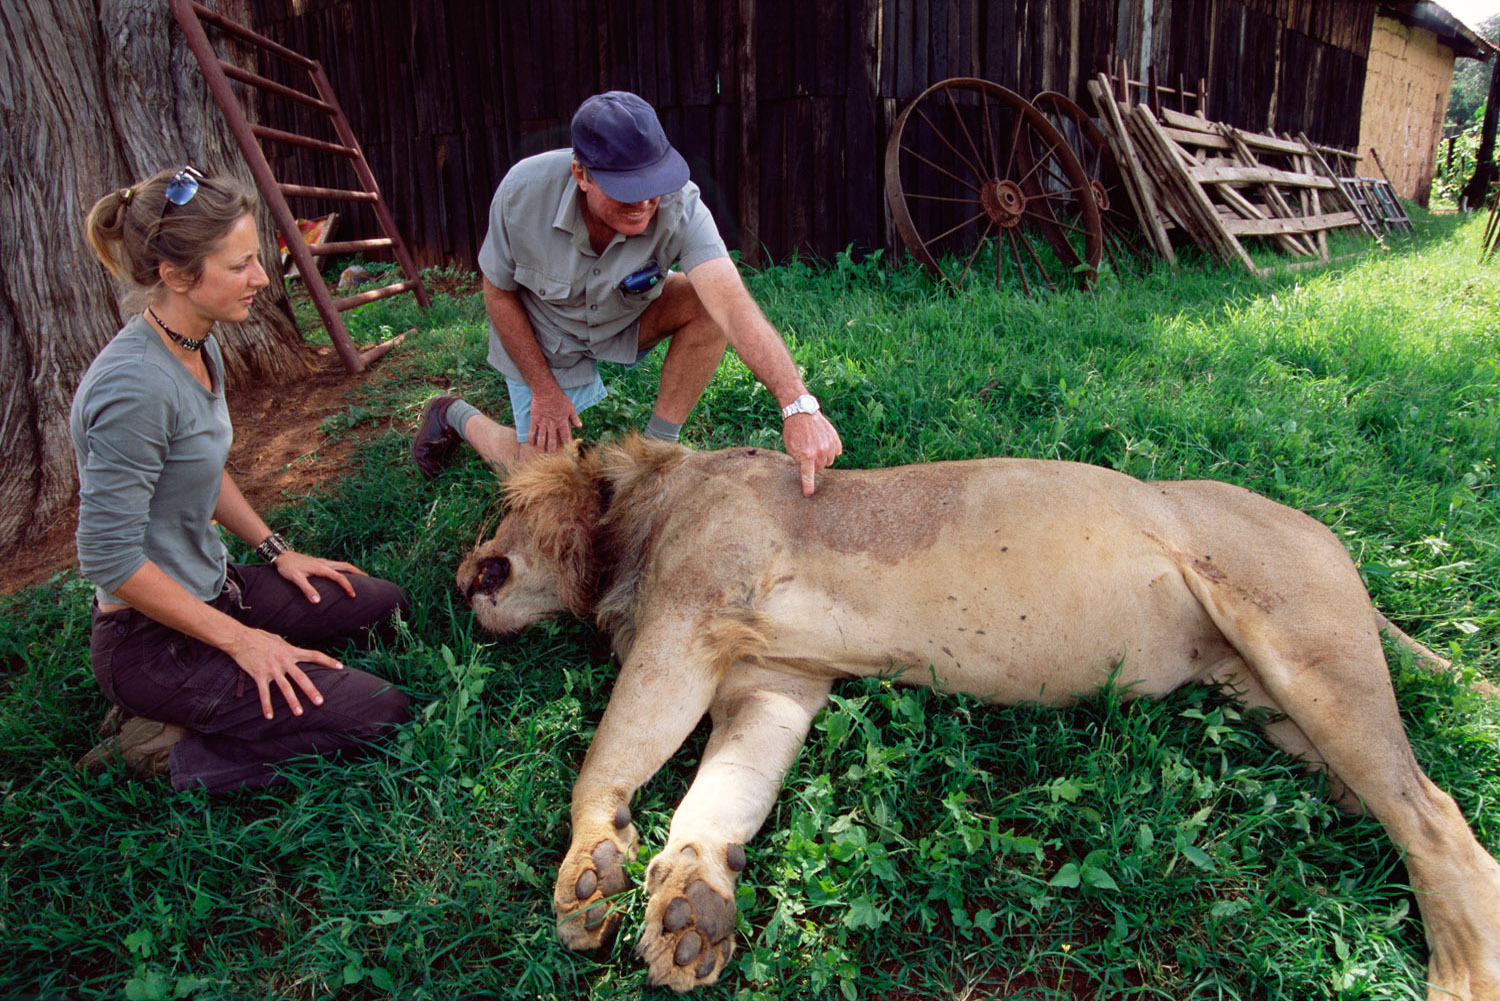 Researcher and rancher with lion shot legally for repeatedly killing domestic cattle, Laikipia, Kenya